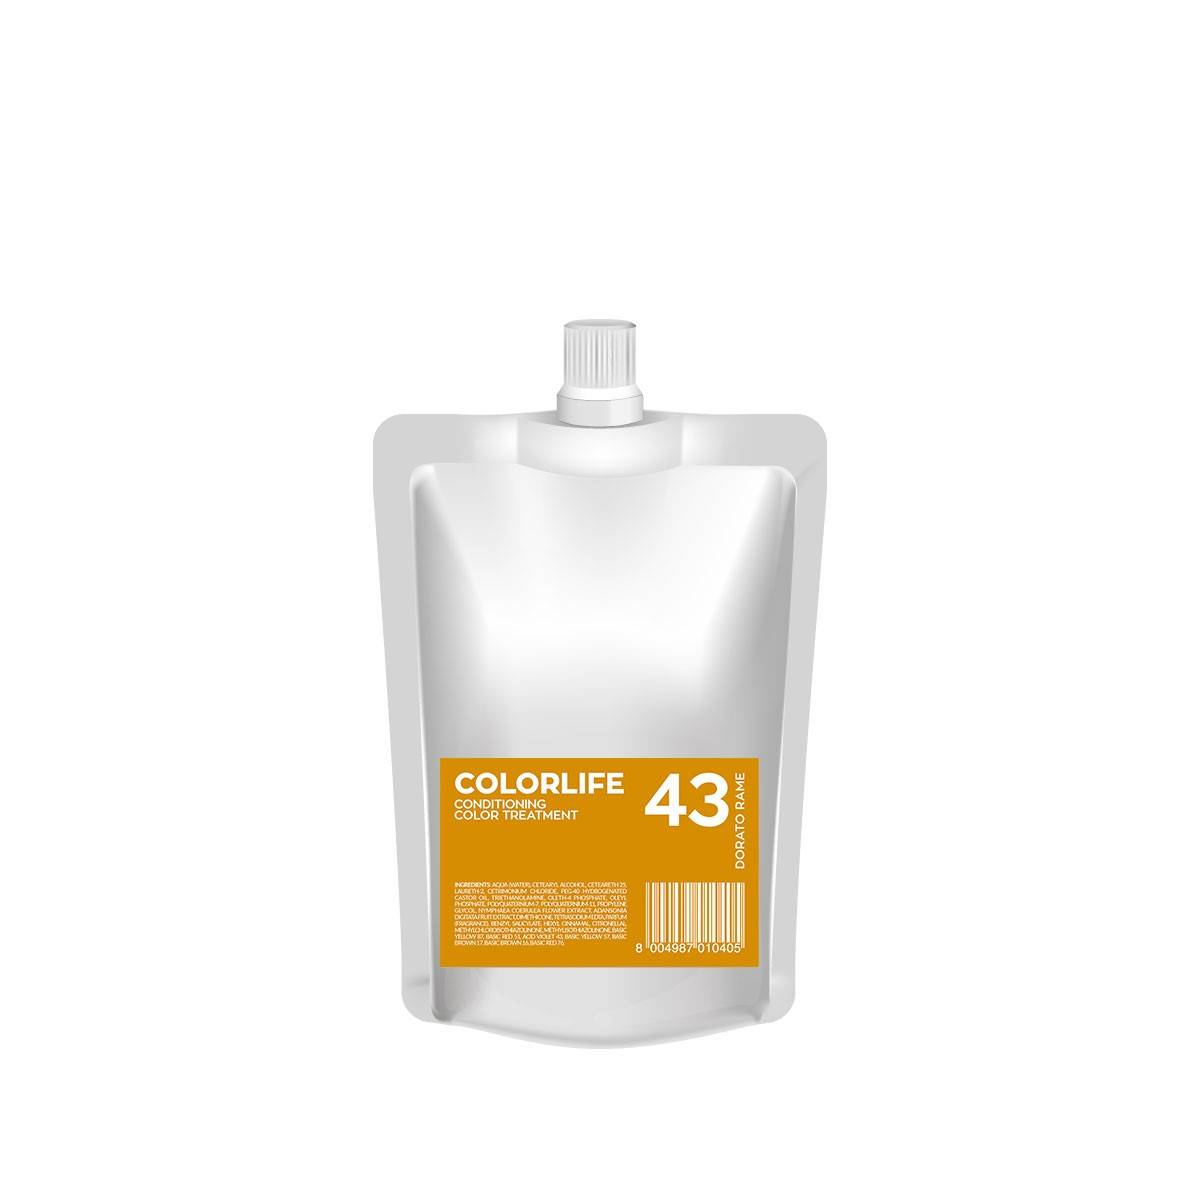 43 Colorlife 200ml Dorato Rame Color Treatment